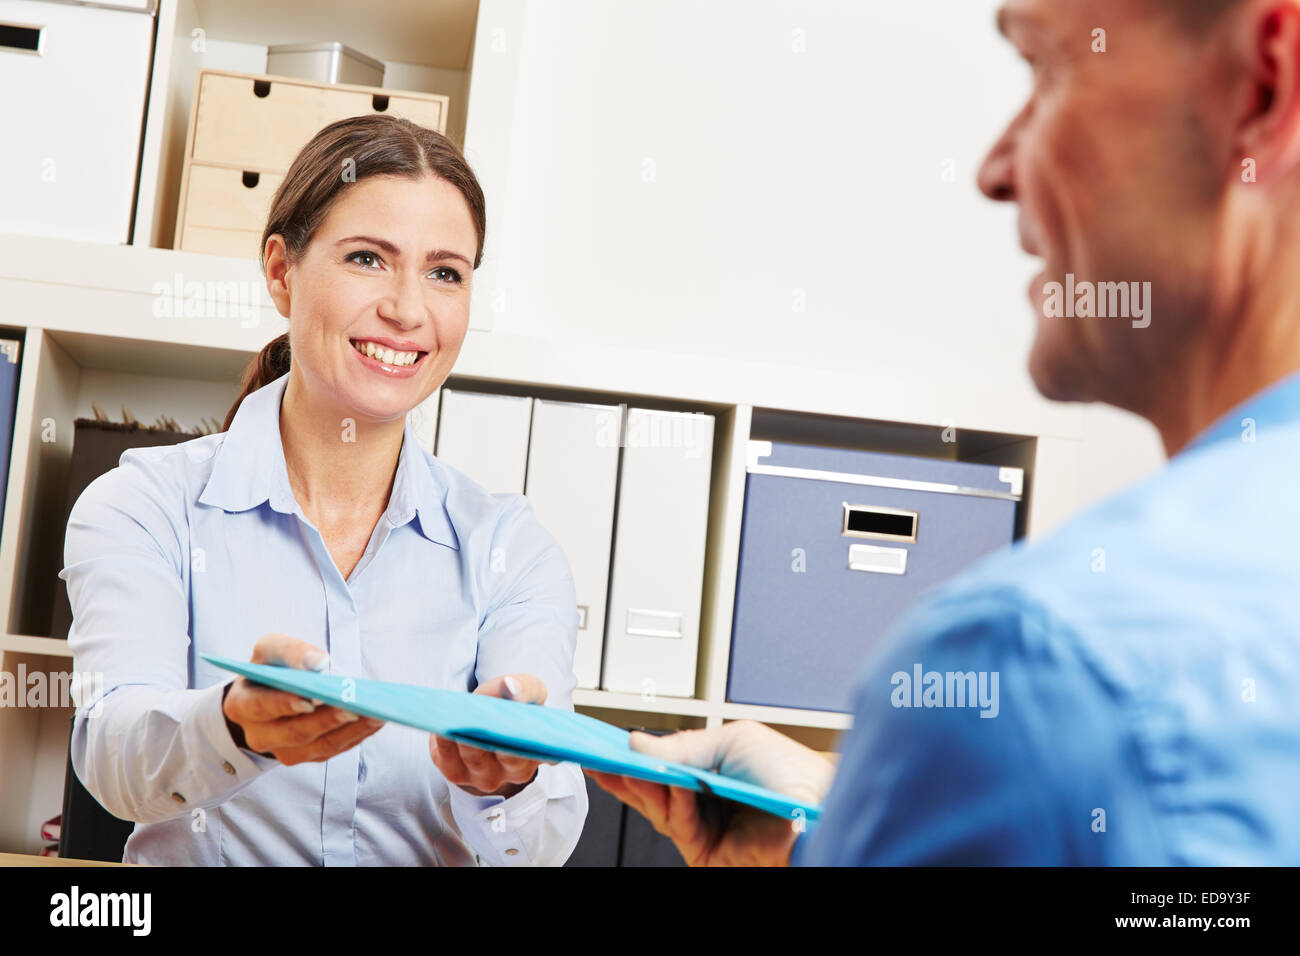 man at job application interview in office handing out r eacute sum eacute  man at job application interview in office handing out reacutesumeacute